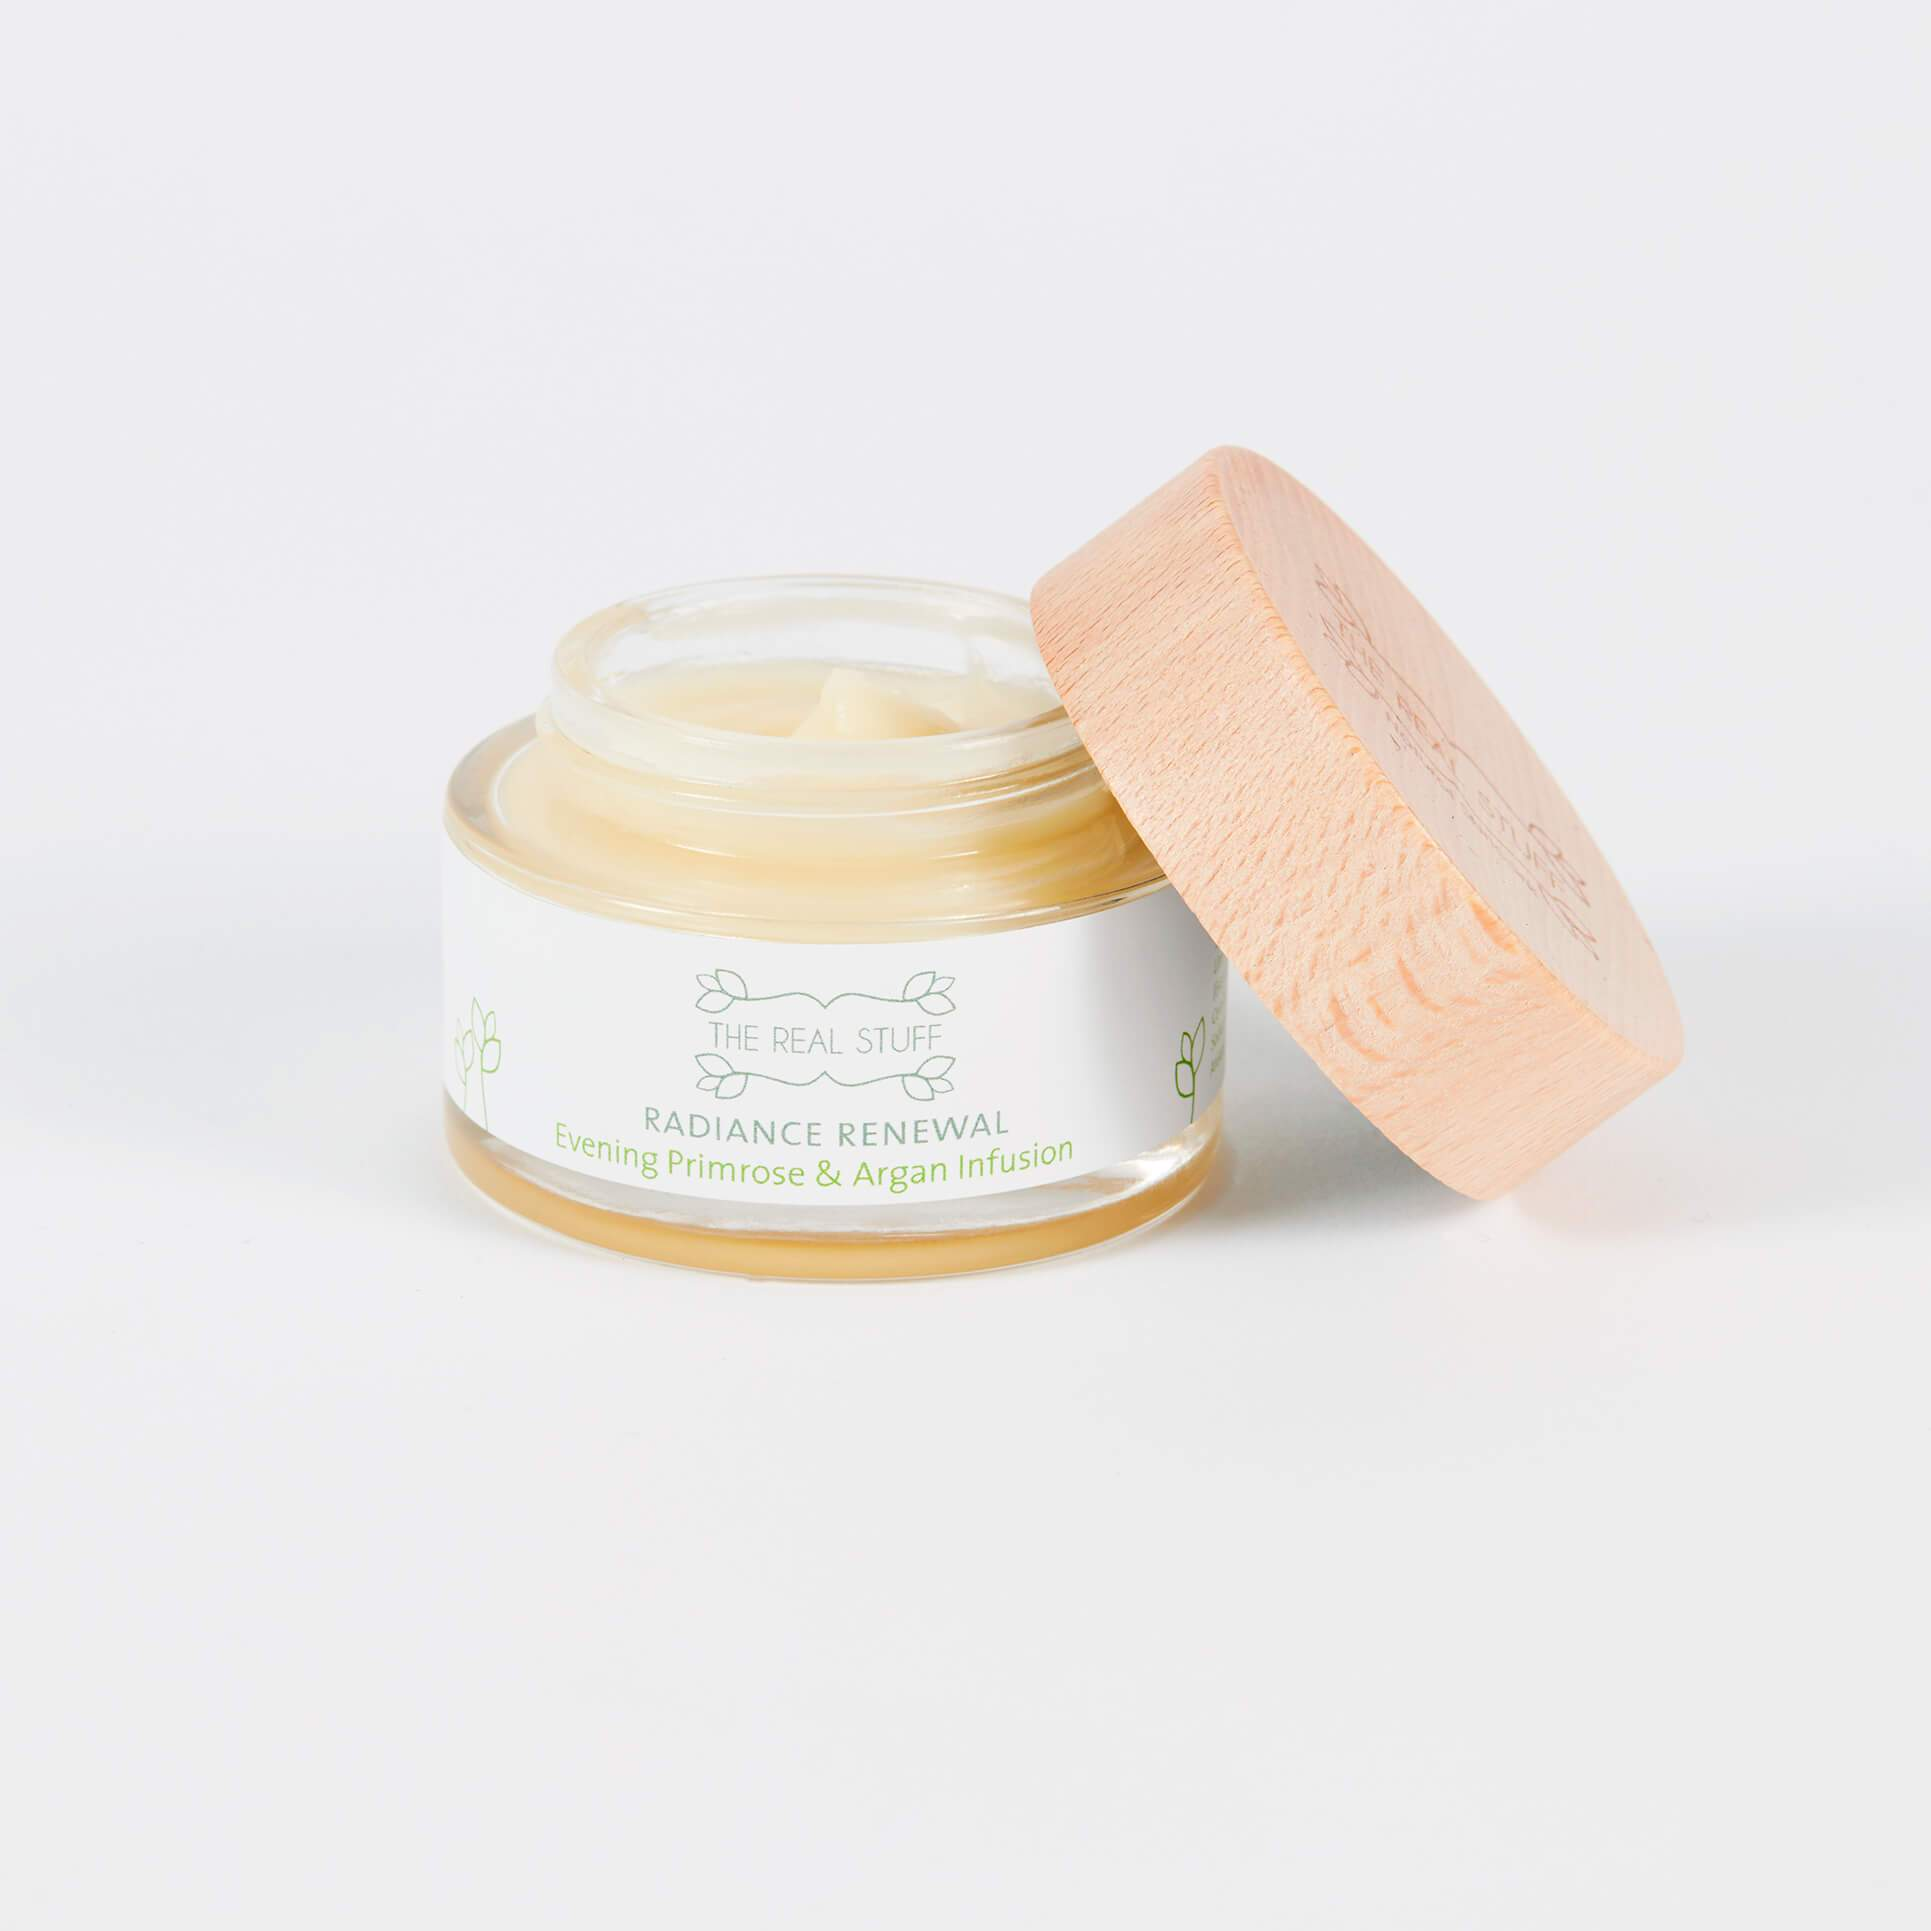 Radiance Renewal Face Cream Tagespflege The Real Stuff Organic Skincare - Genuine Selection